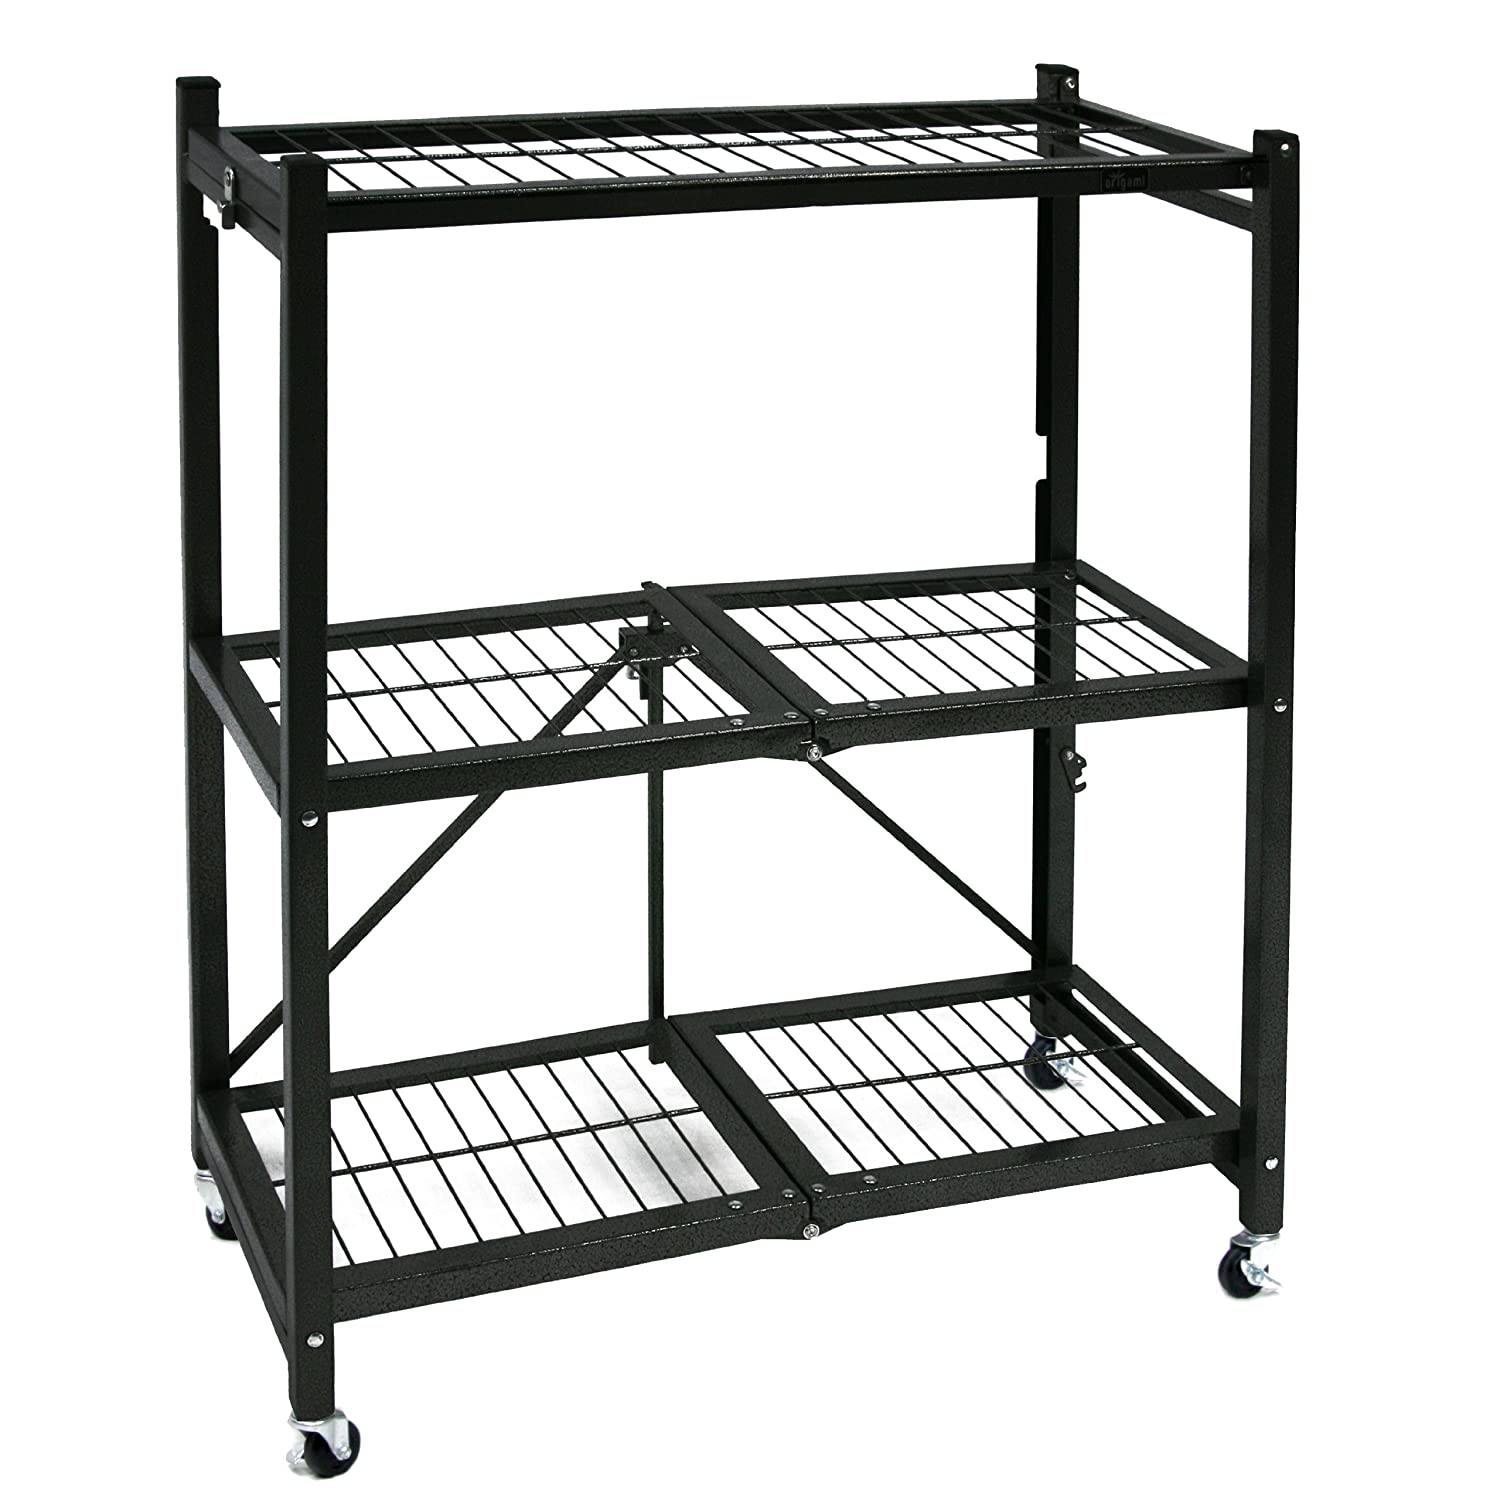 metal storage shelves. amazon.com: origami general purpose steel storage rack with wheels, 3-shelf, small: home improvement metal shelves